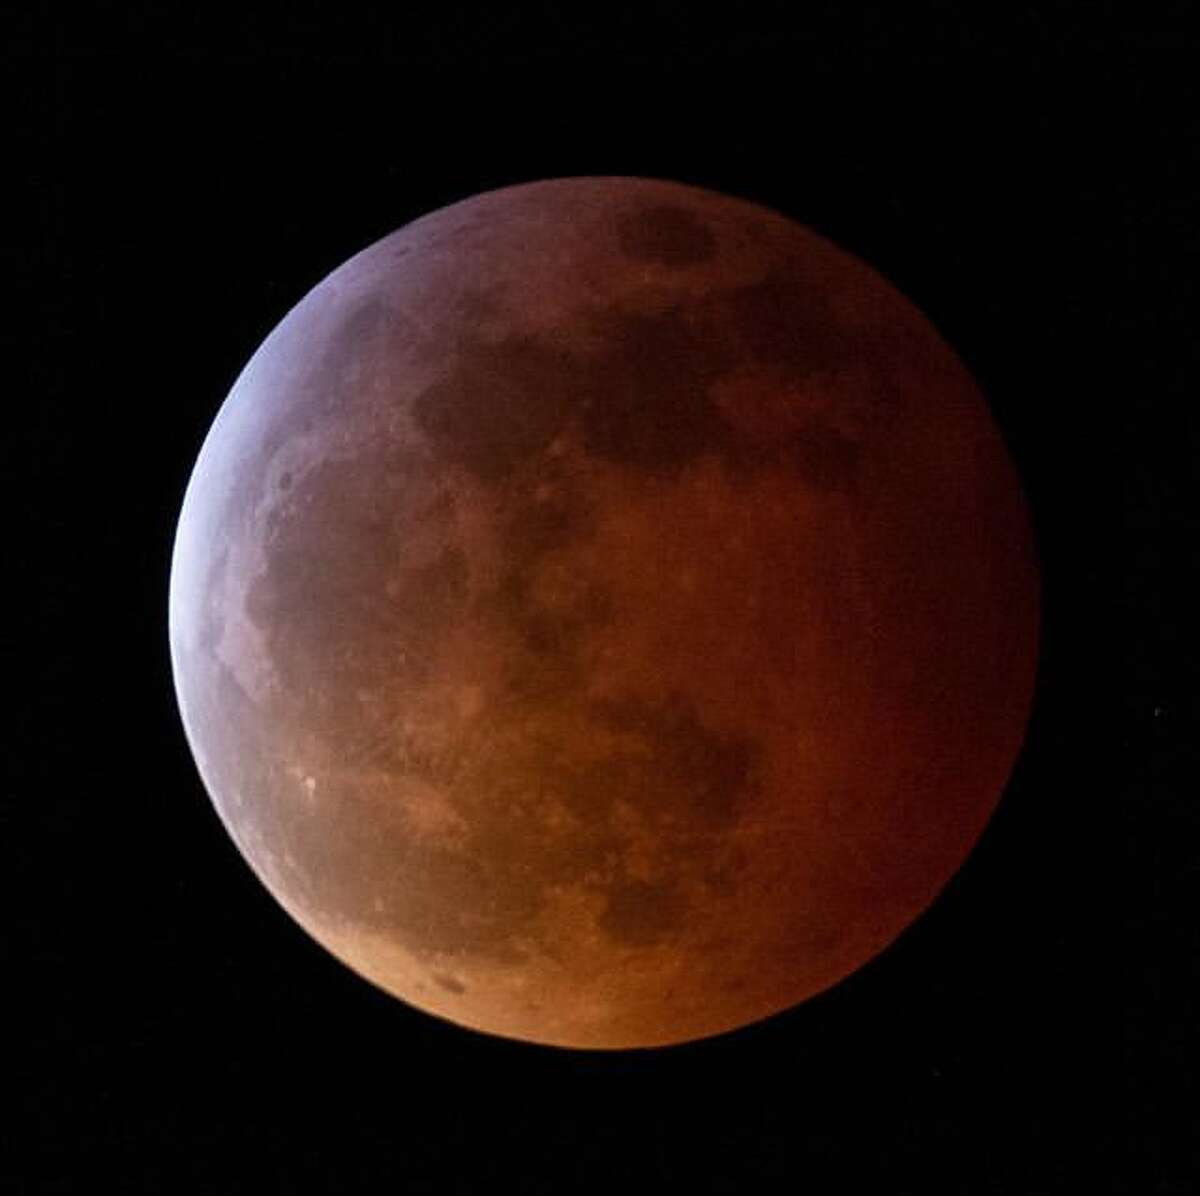 The clouds parted so @telephototim could photograph the Super Blood Wolf Moon Lunar Eclipse on Sunday, January 20, 2019.